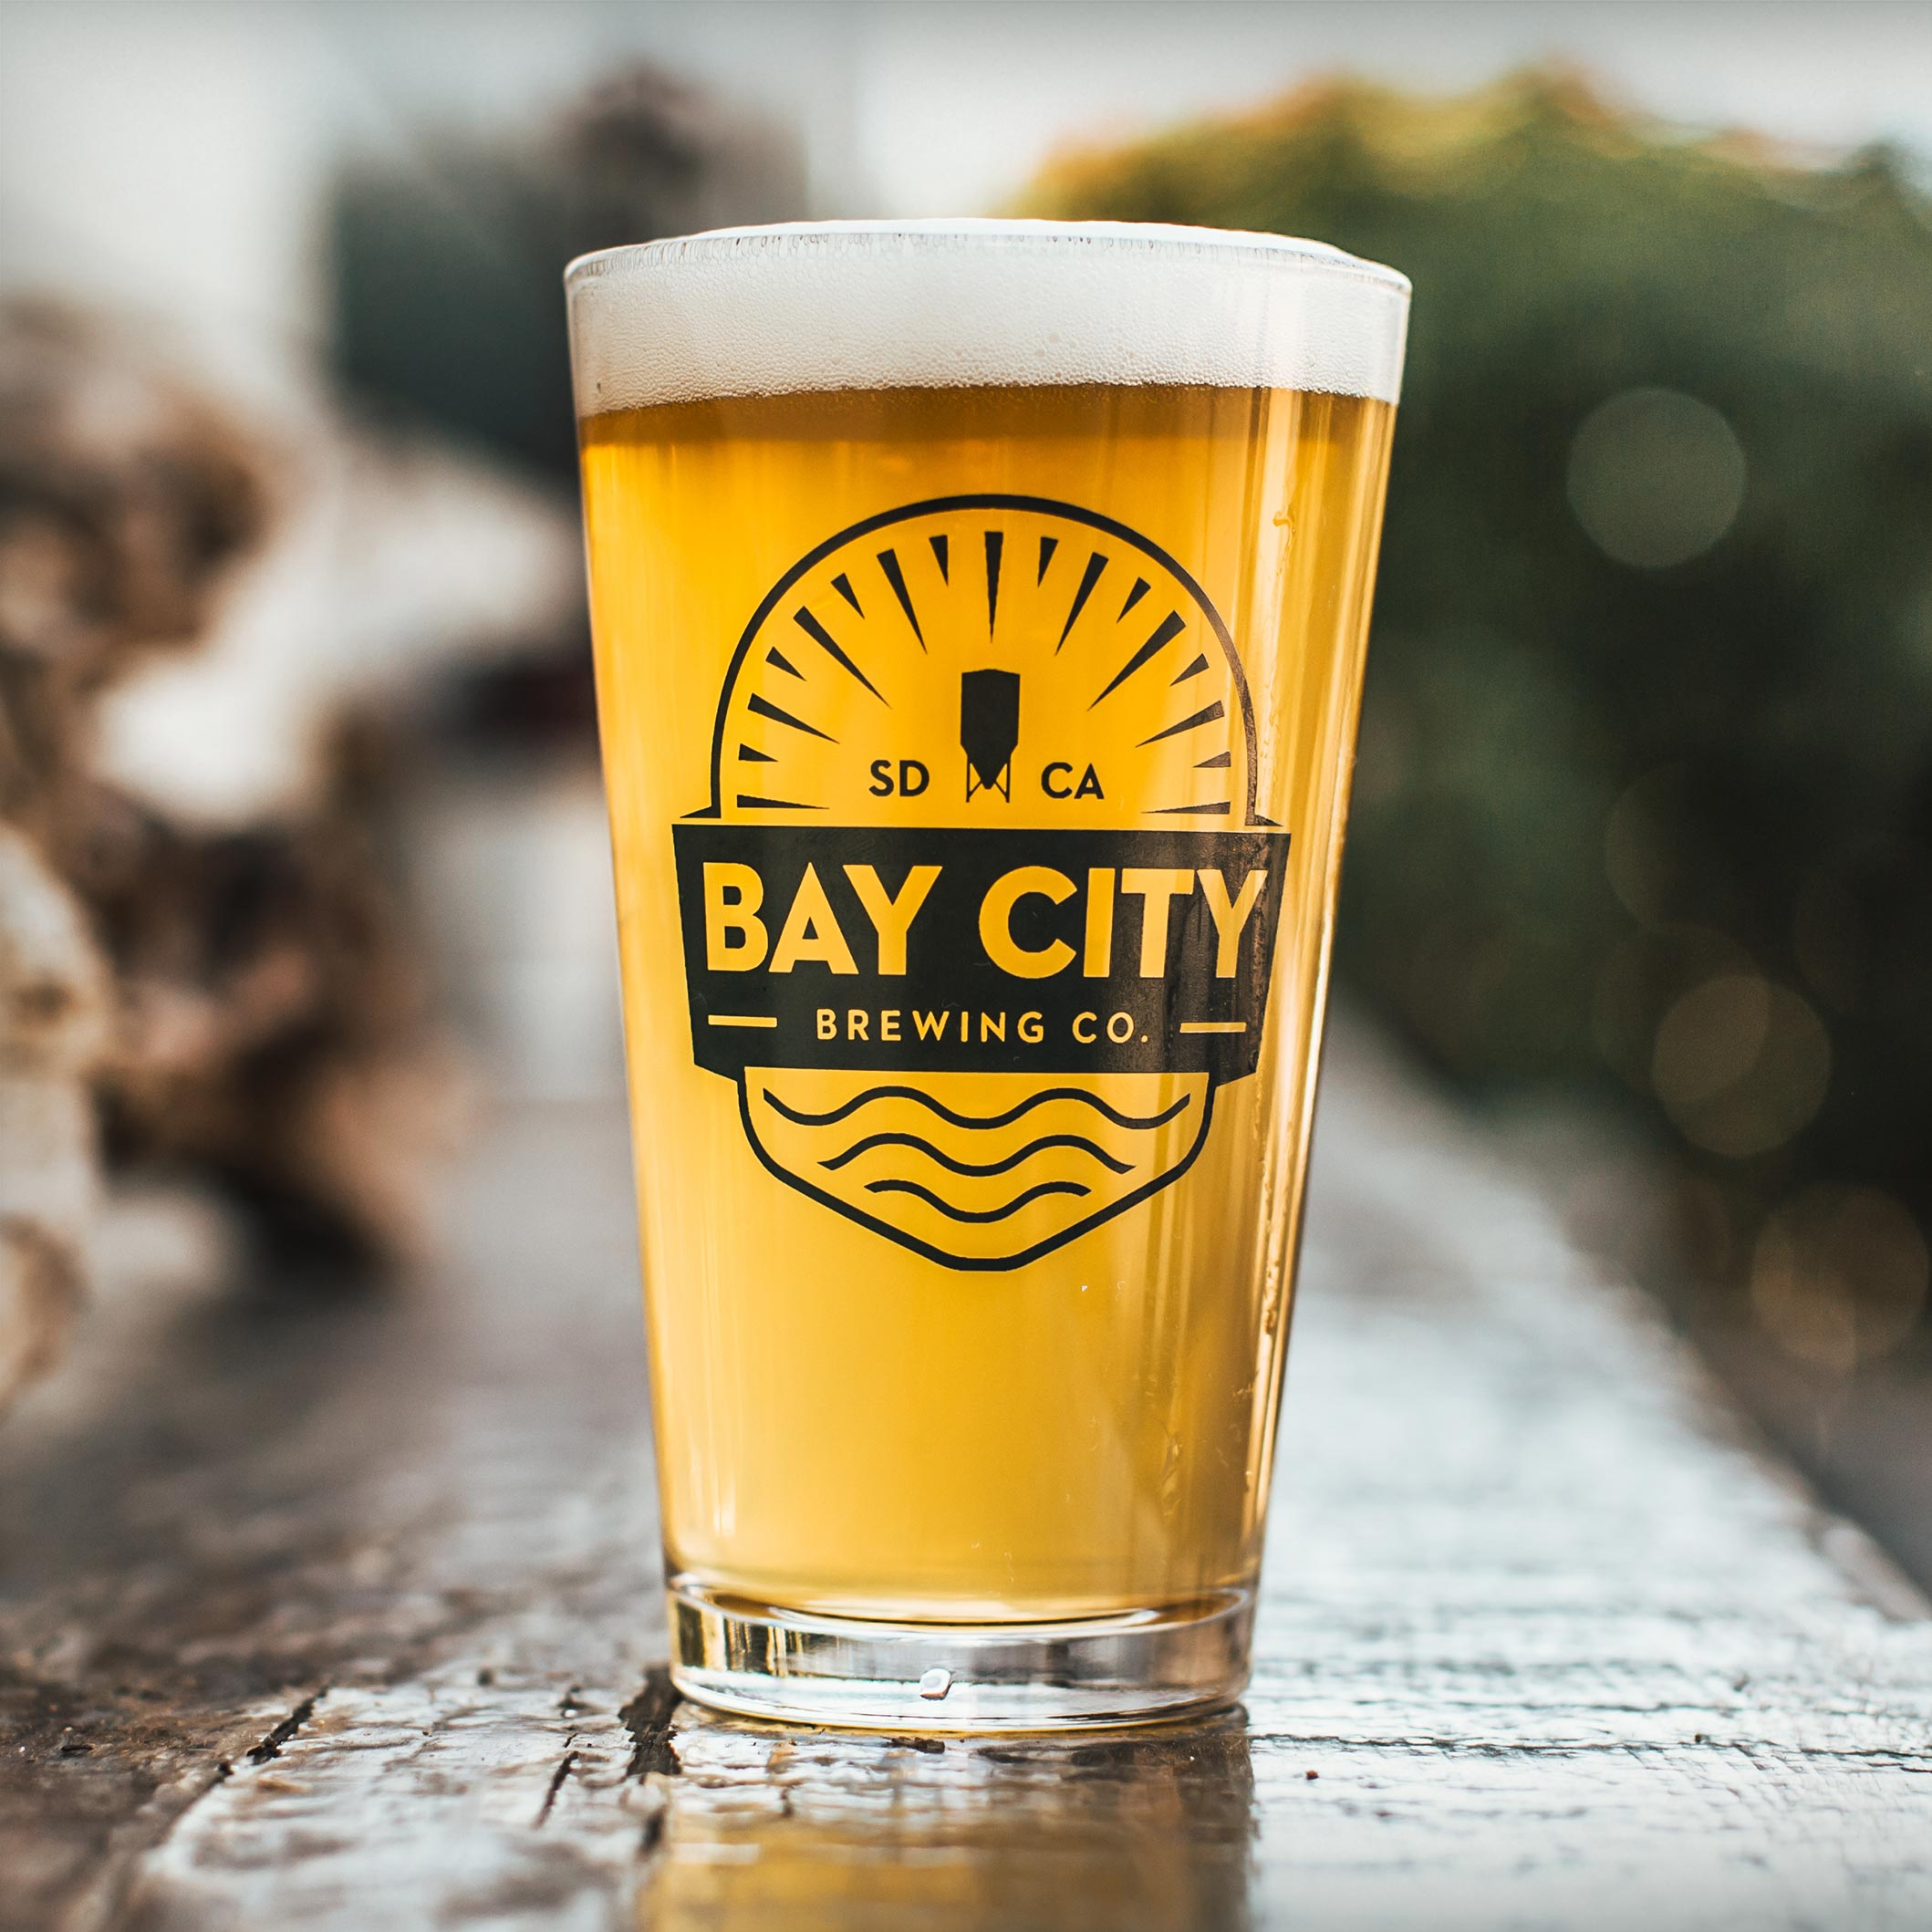 https://baycitybrewingco.com/wp-content/uploads/2019/03/bay_city_quinns_pale_ale_glass_2x-1.jpg